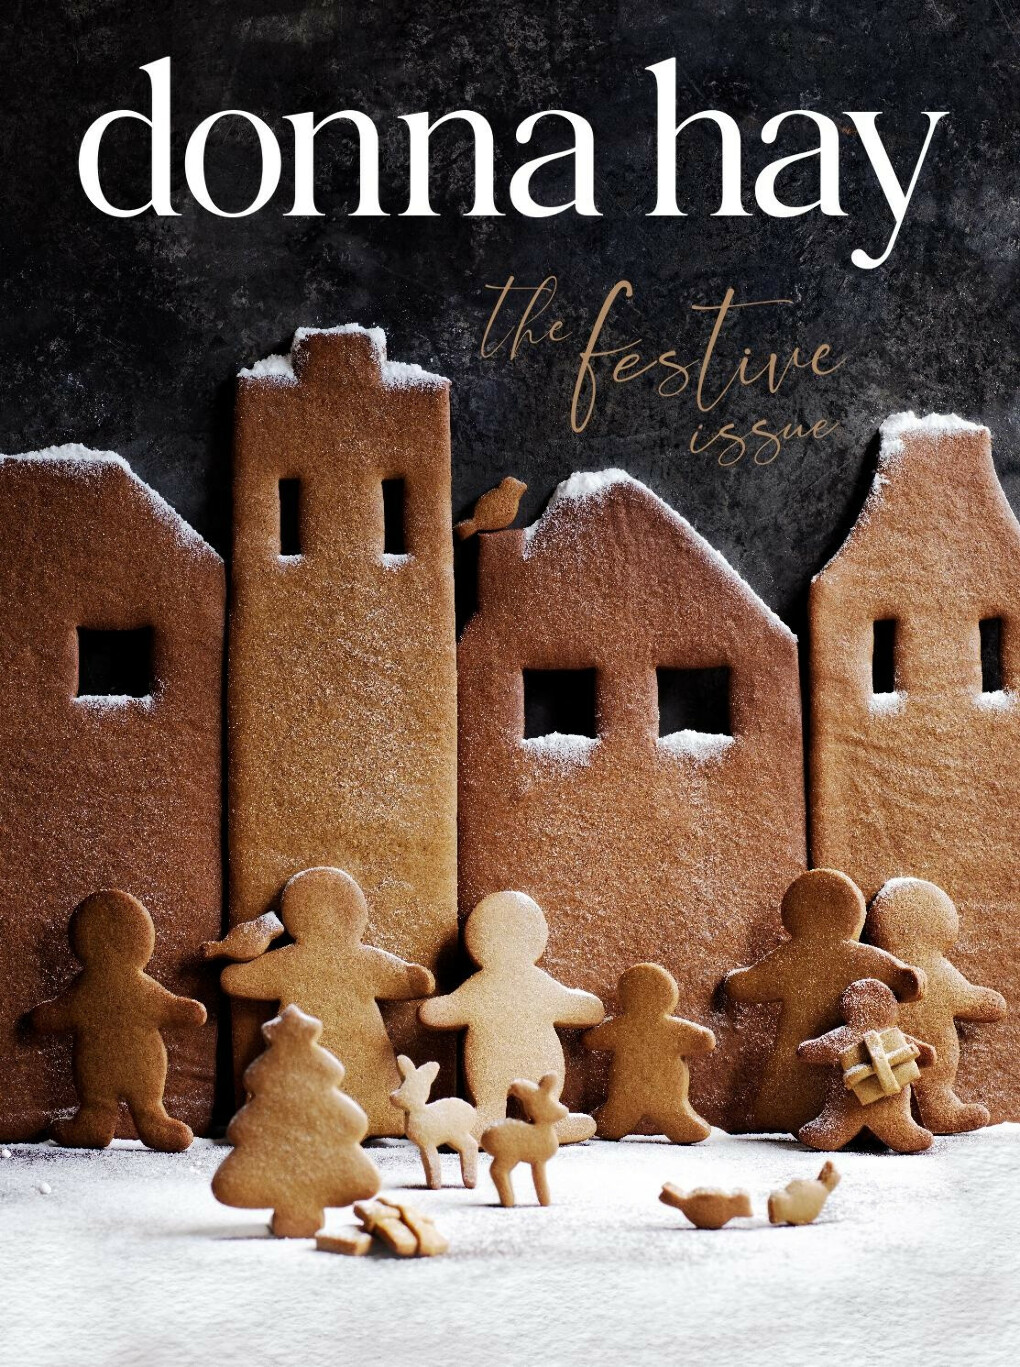 donna hay - the festive issue